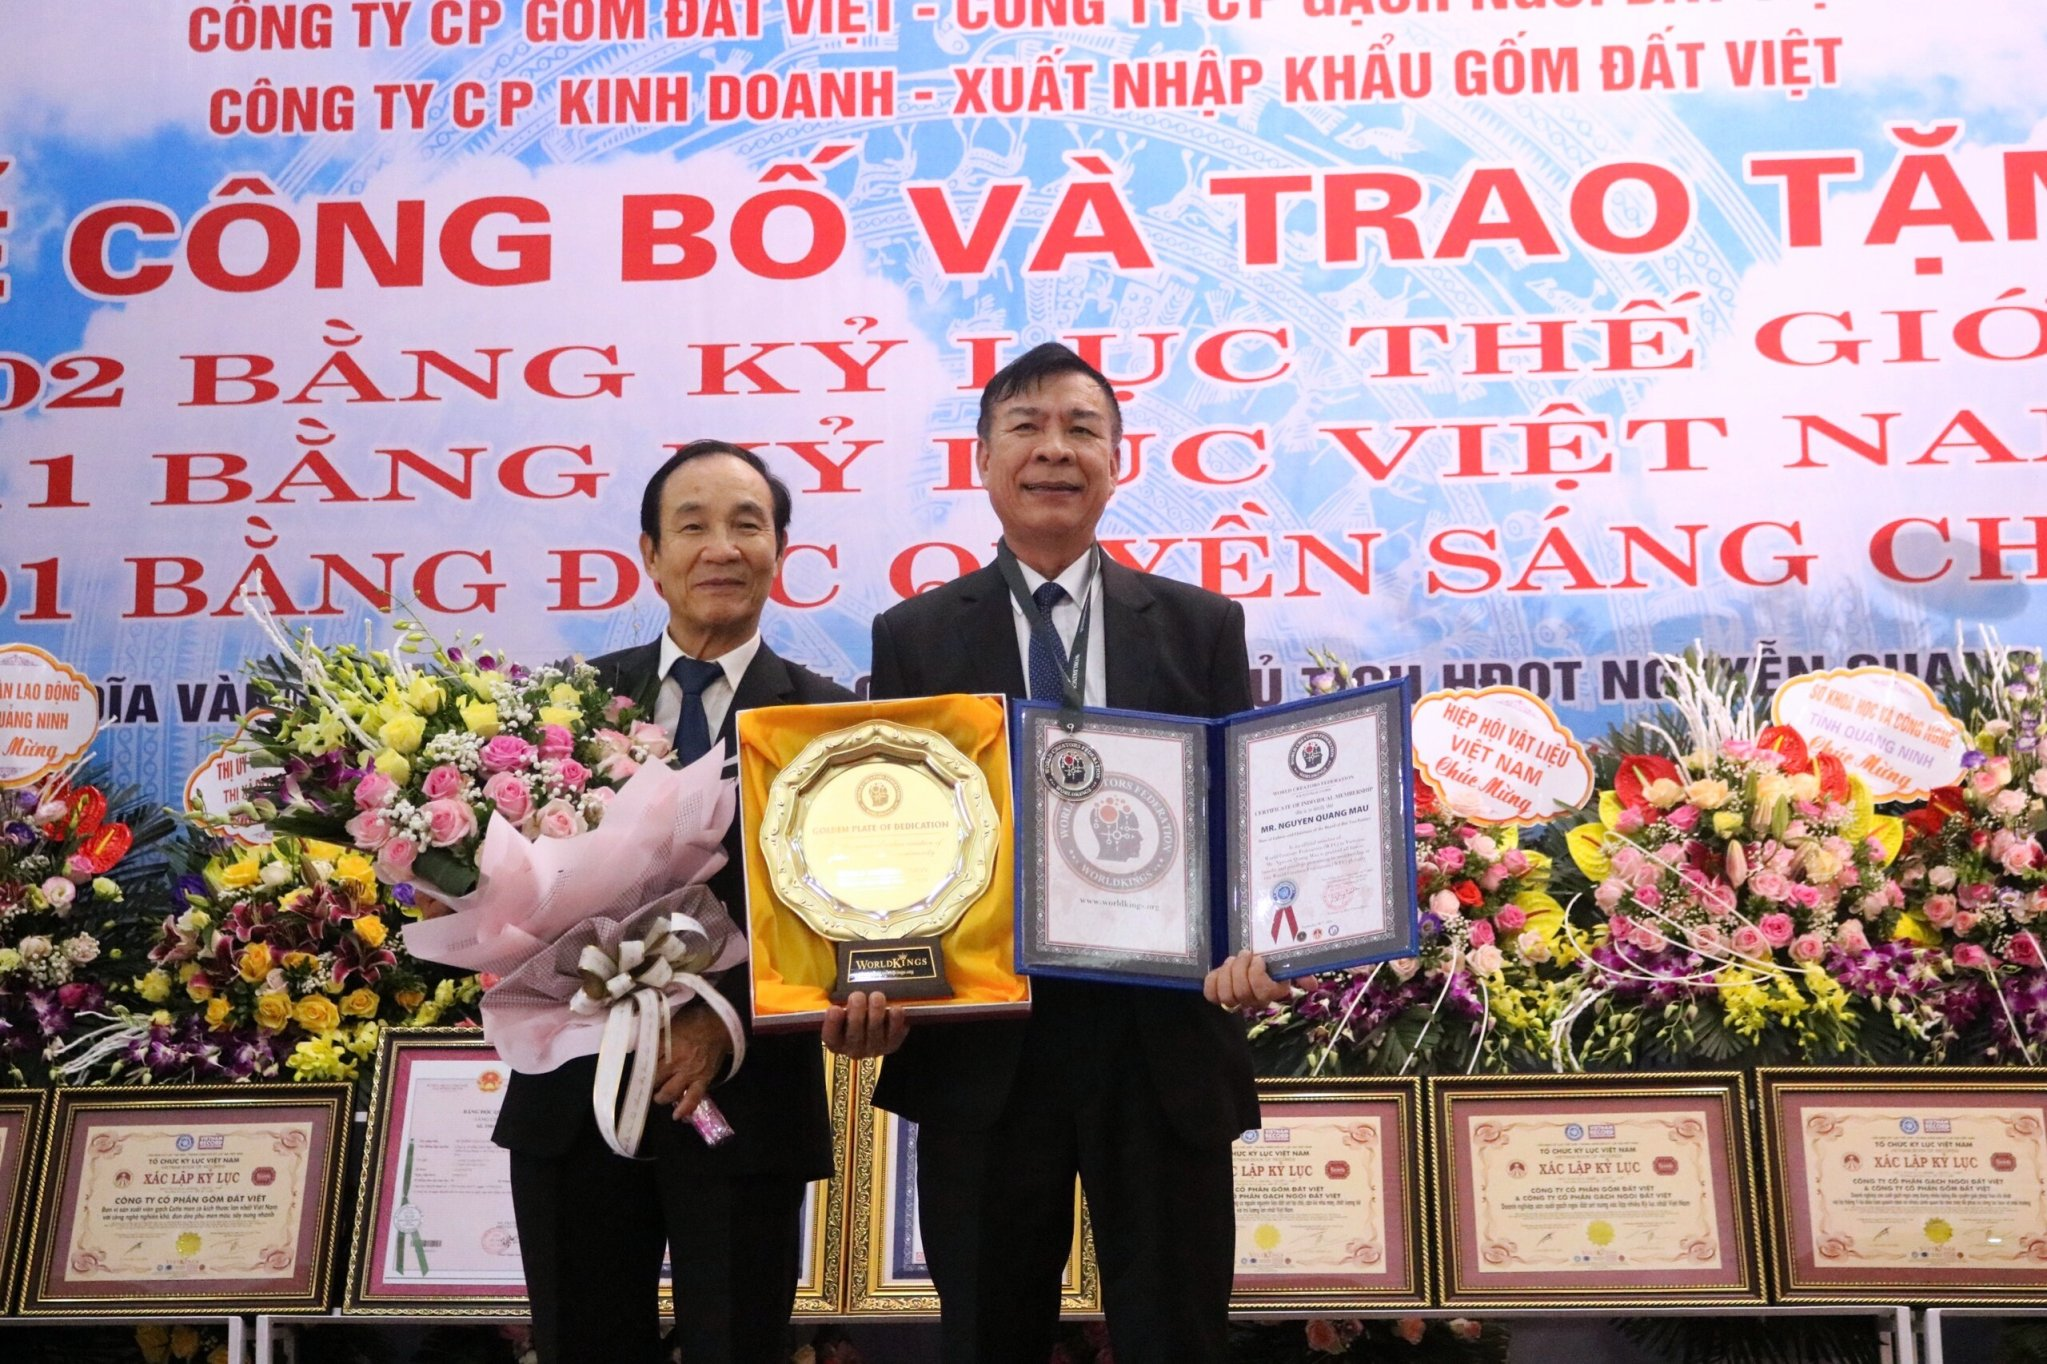 Labor hero Nguyen Quang Mau, Chairman of VIETNAM CERAMICS was also honored to receive the creative gold disc of the World Federation of Creators.